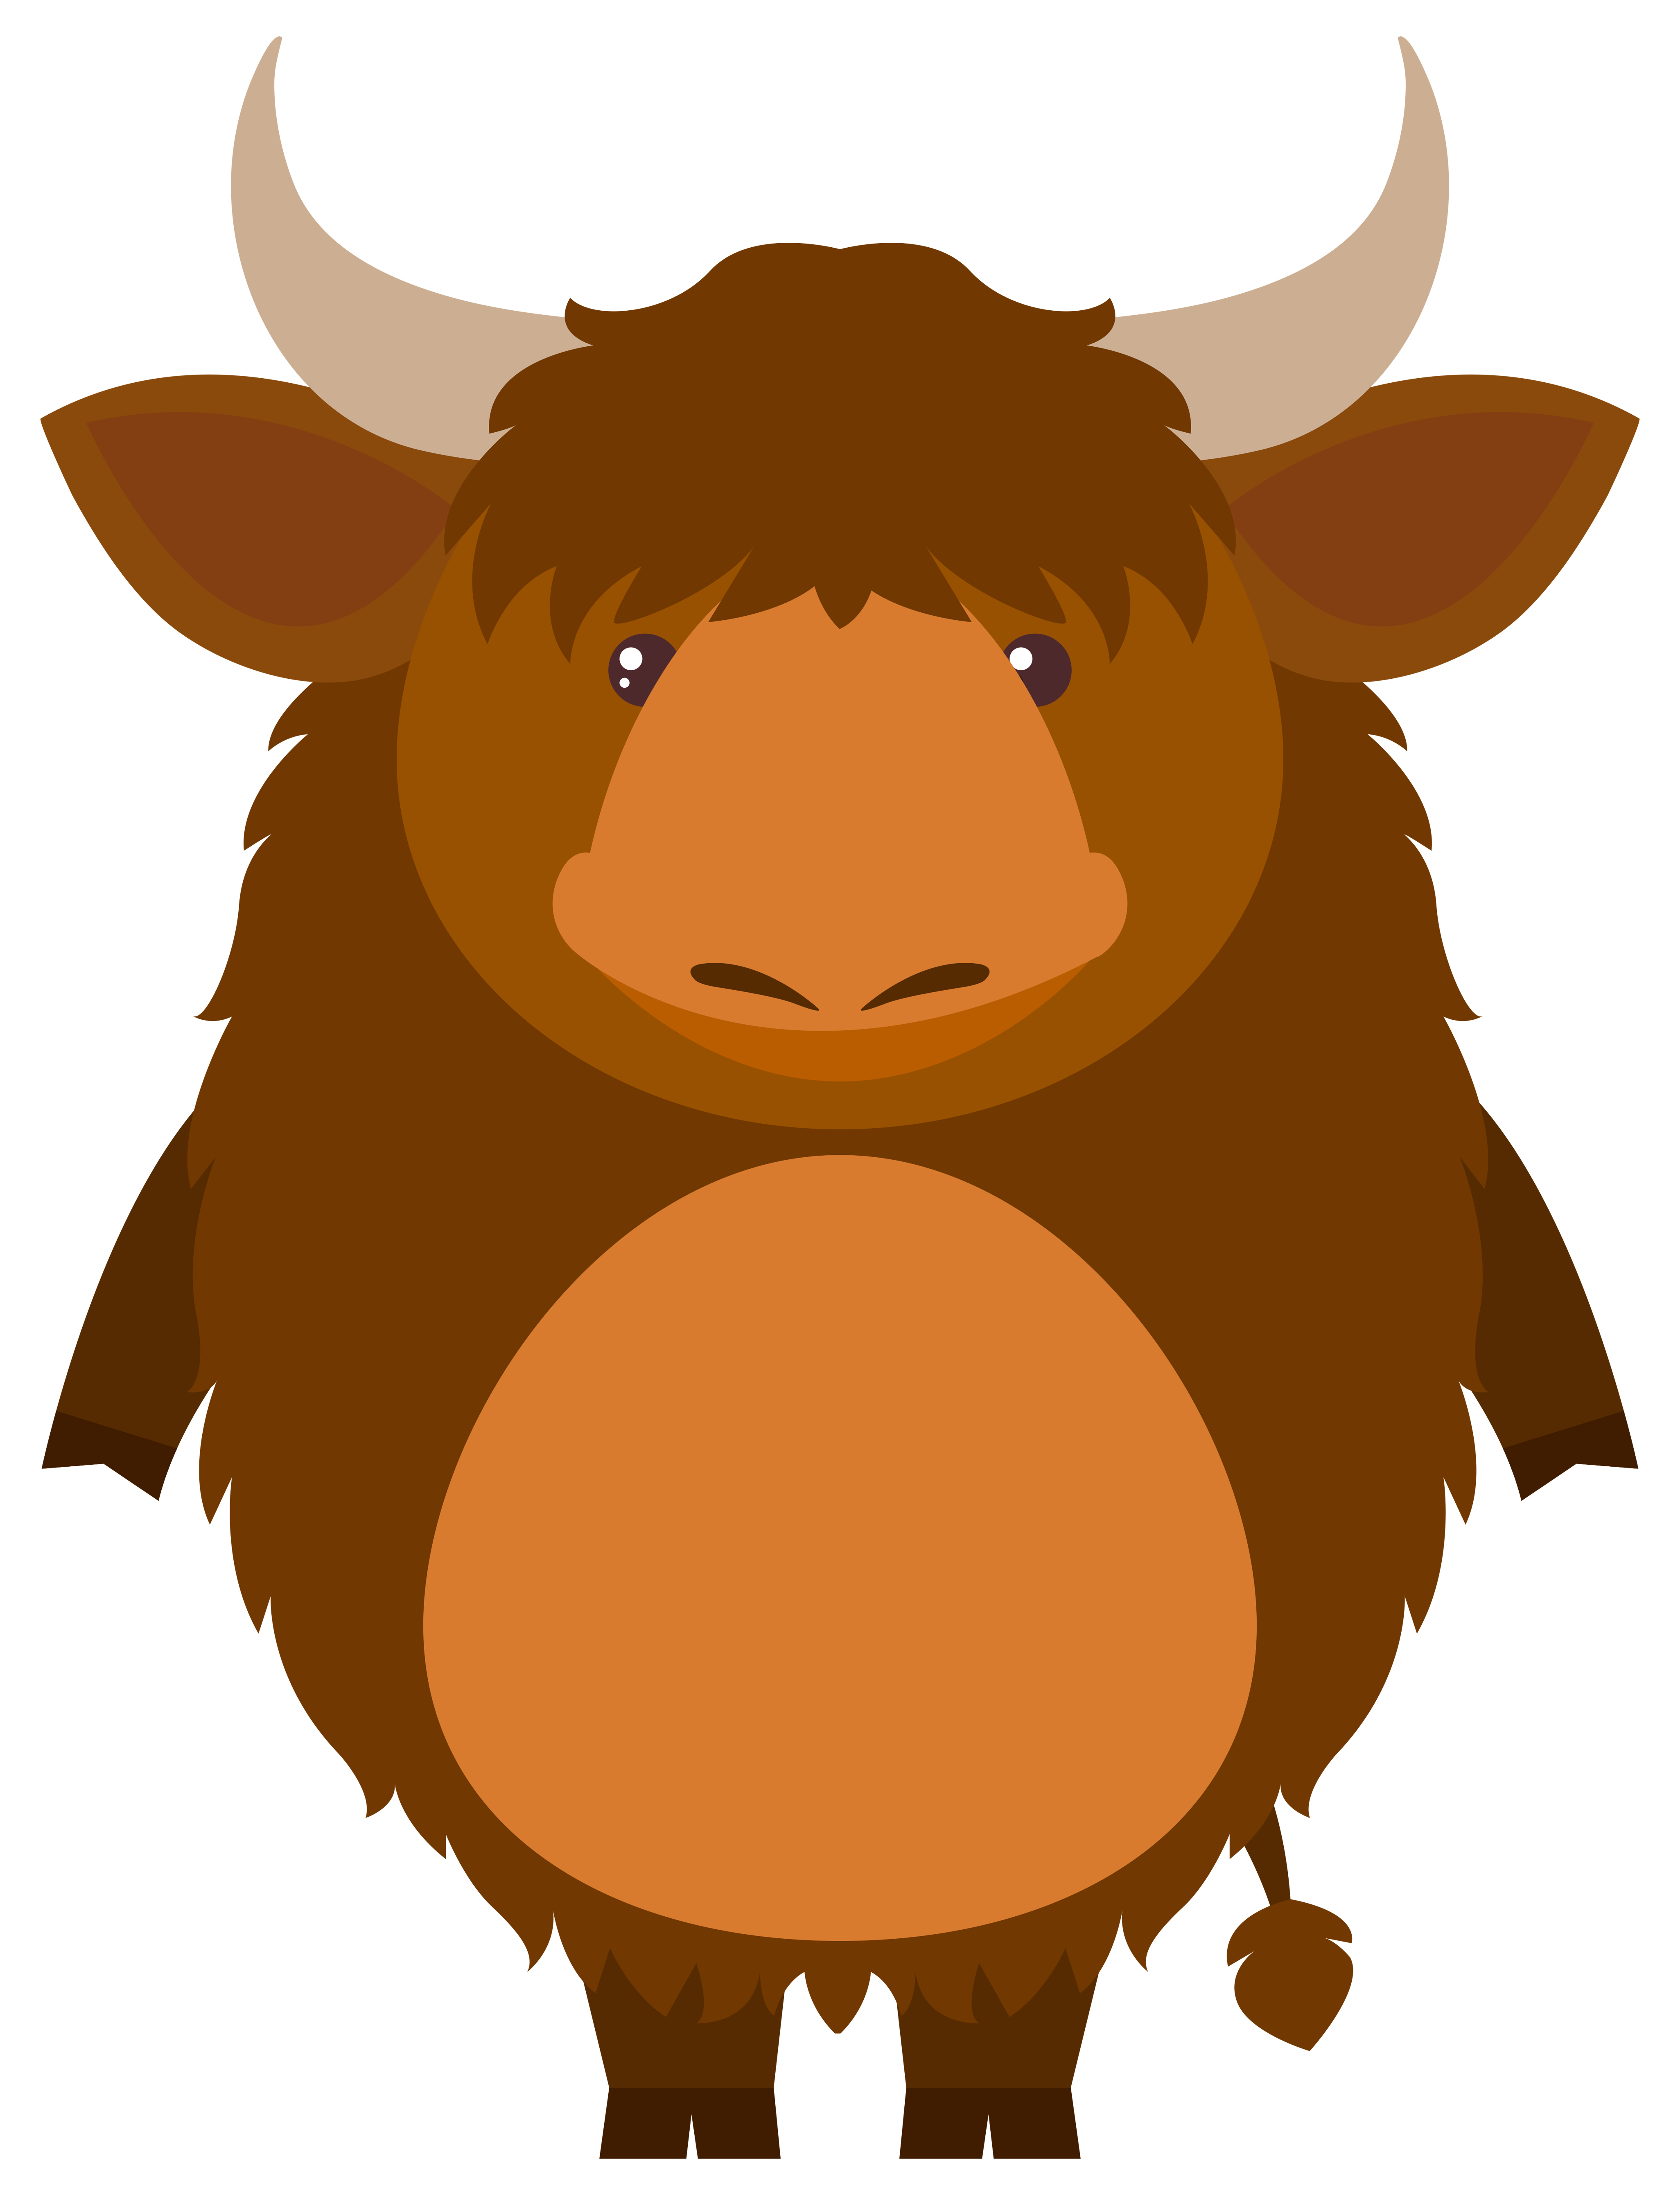 Yak Png Image Background - Domestic Animals That Give Us Food Clipart  (#4533843) - PikPng